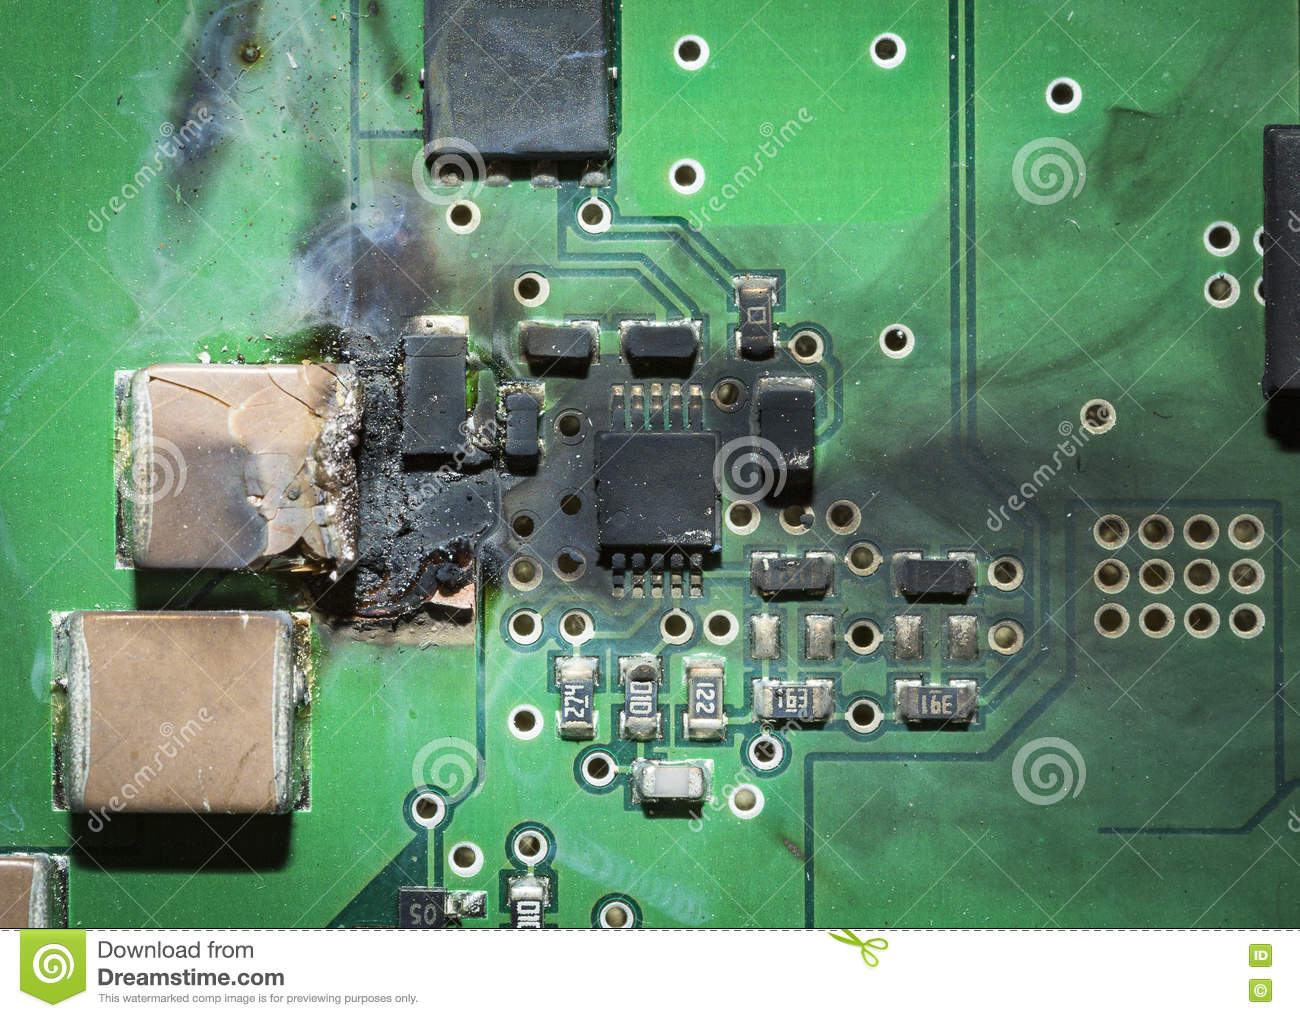 smd circuit board stock image image of semiconductor 22614161 rh dreamstime com Surface Mount Circuit Board BGA 0201 Package Size